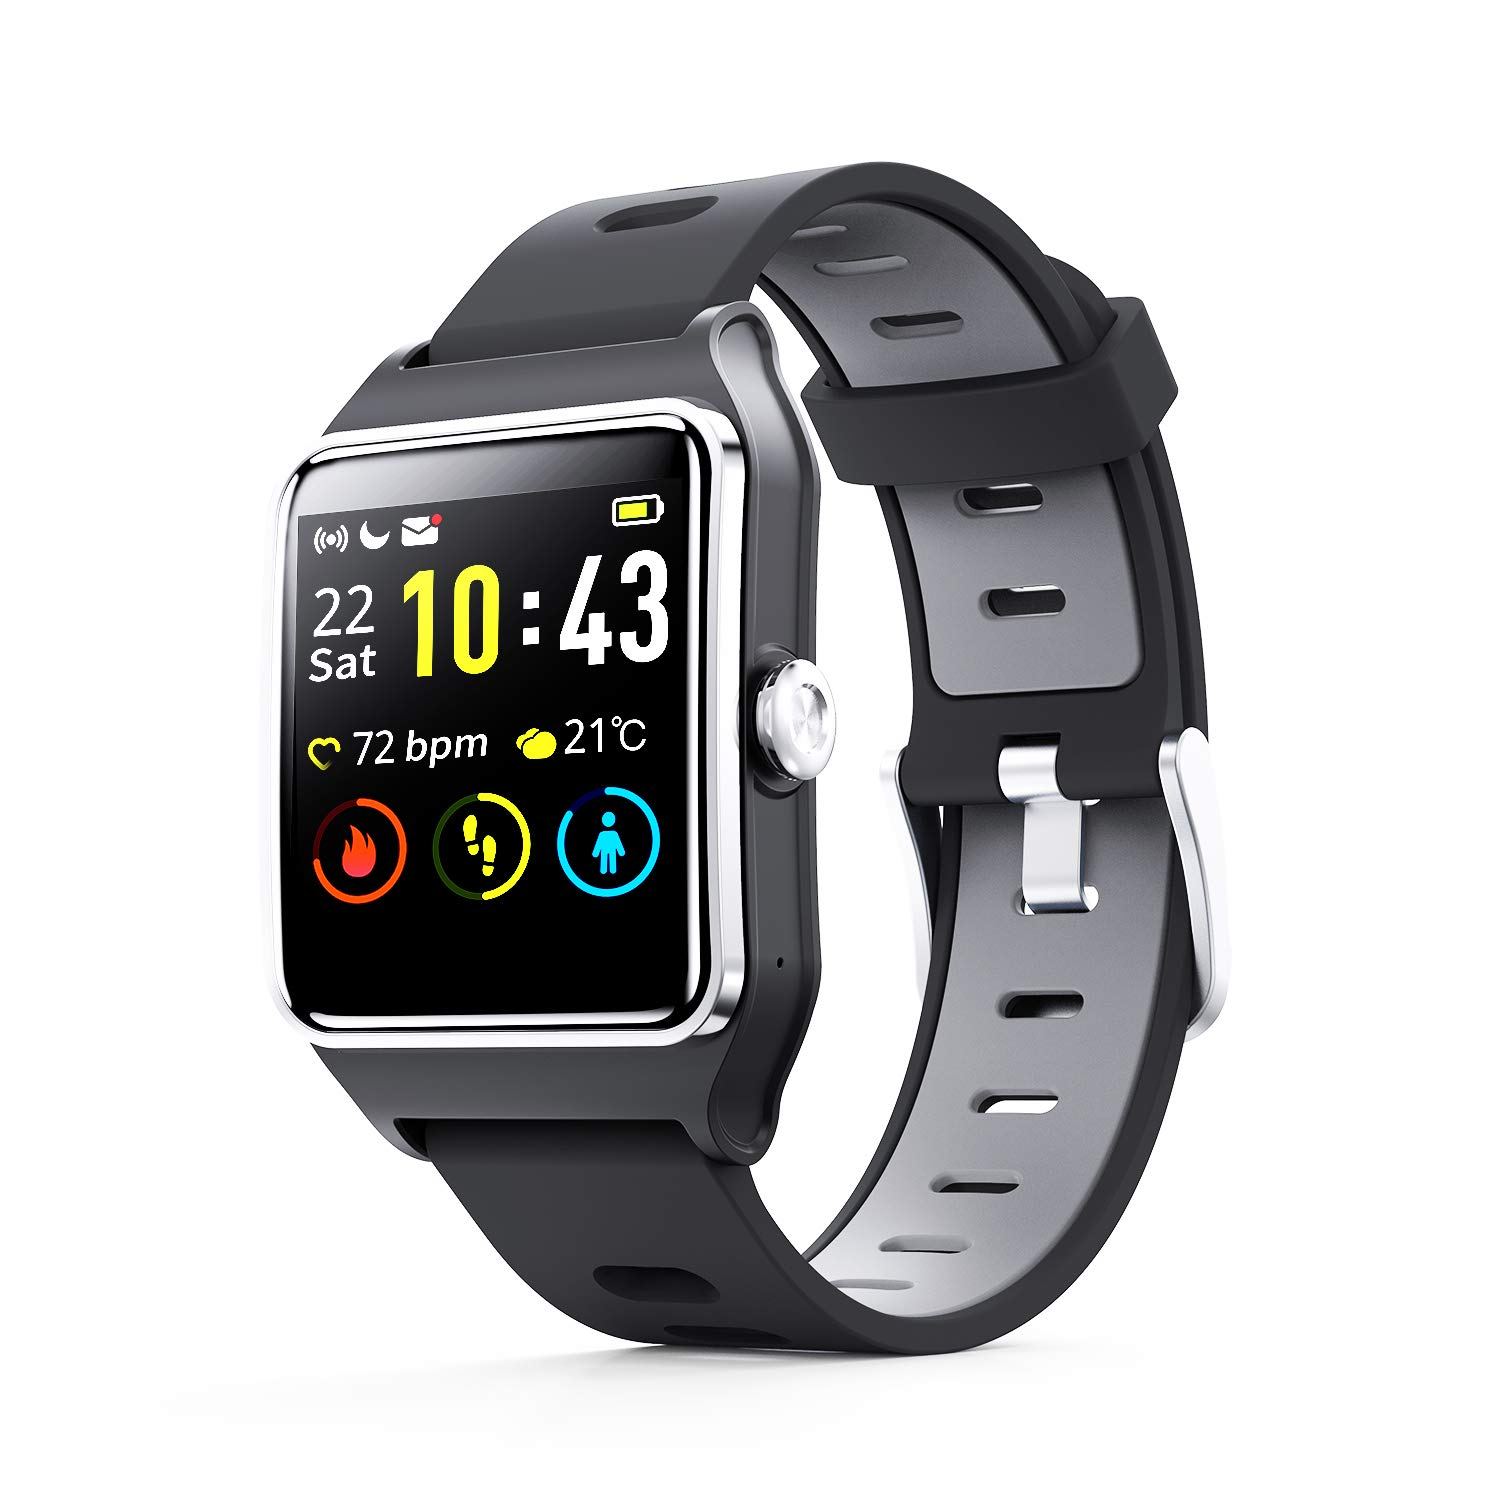 ENACFIRE Smart Watch W2 IP68 Waterproof Fitness Tracker Smartwatch with GPS, Heart Rate Monitor, Sleep Tracker, Step Counter, Activity Watches for Men, Women, Kids, Compatible with Android iOS Phone by ENACFIRE